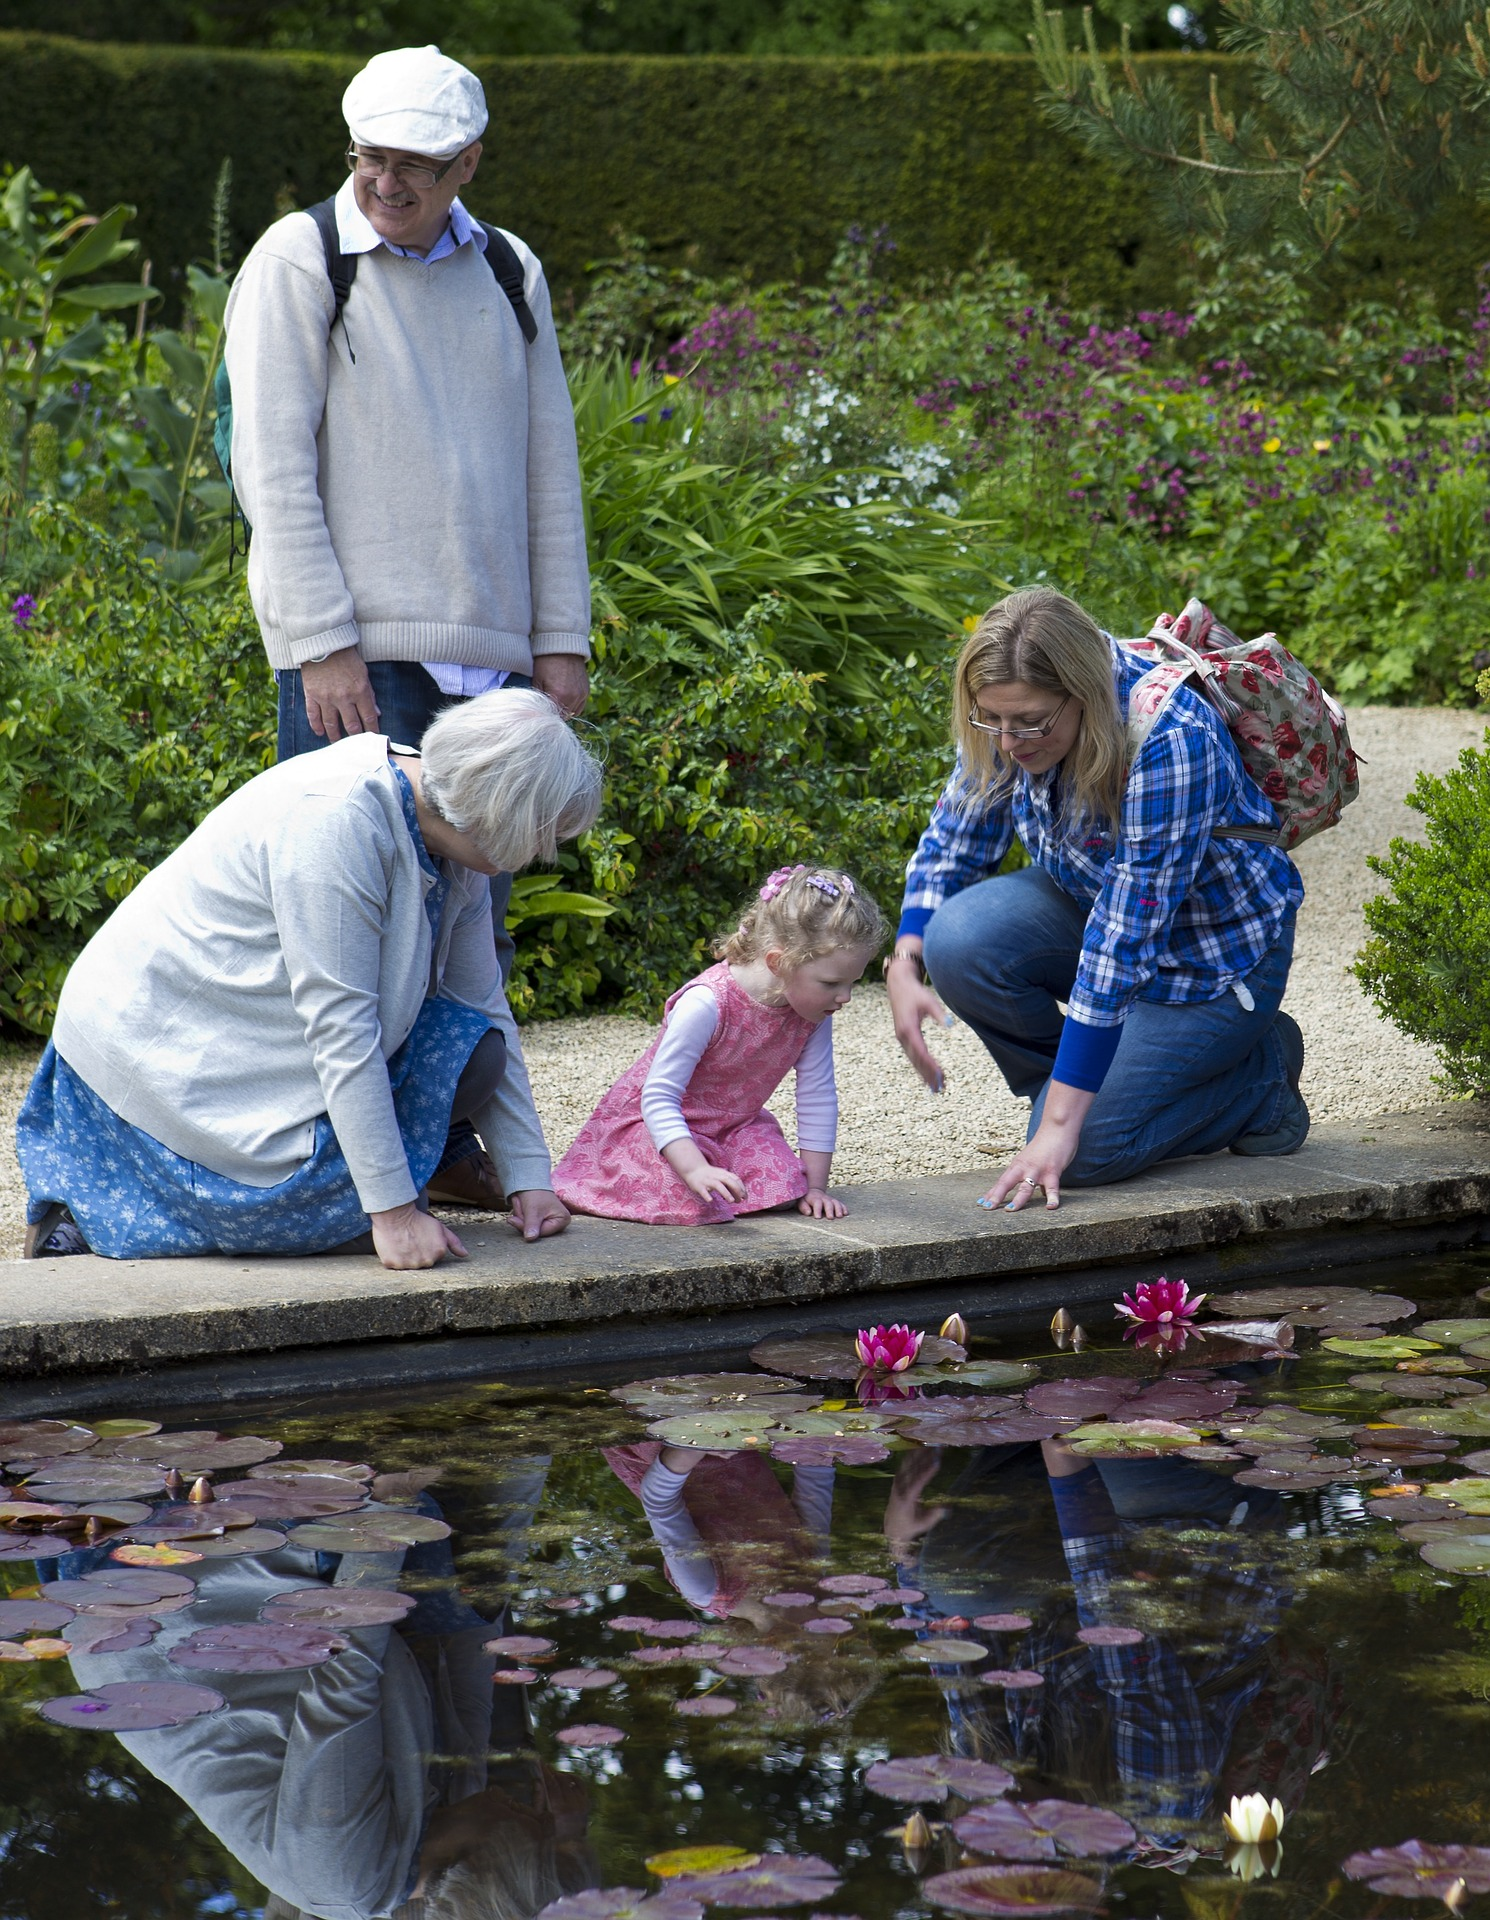 lilly-pond-805207_1920